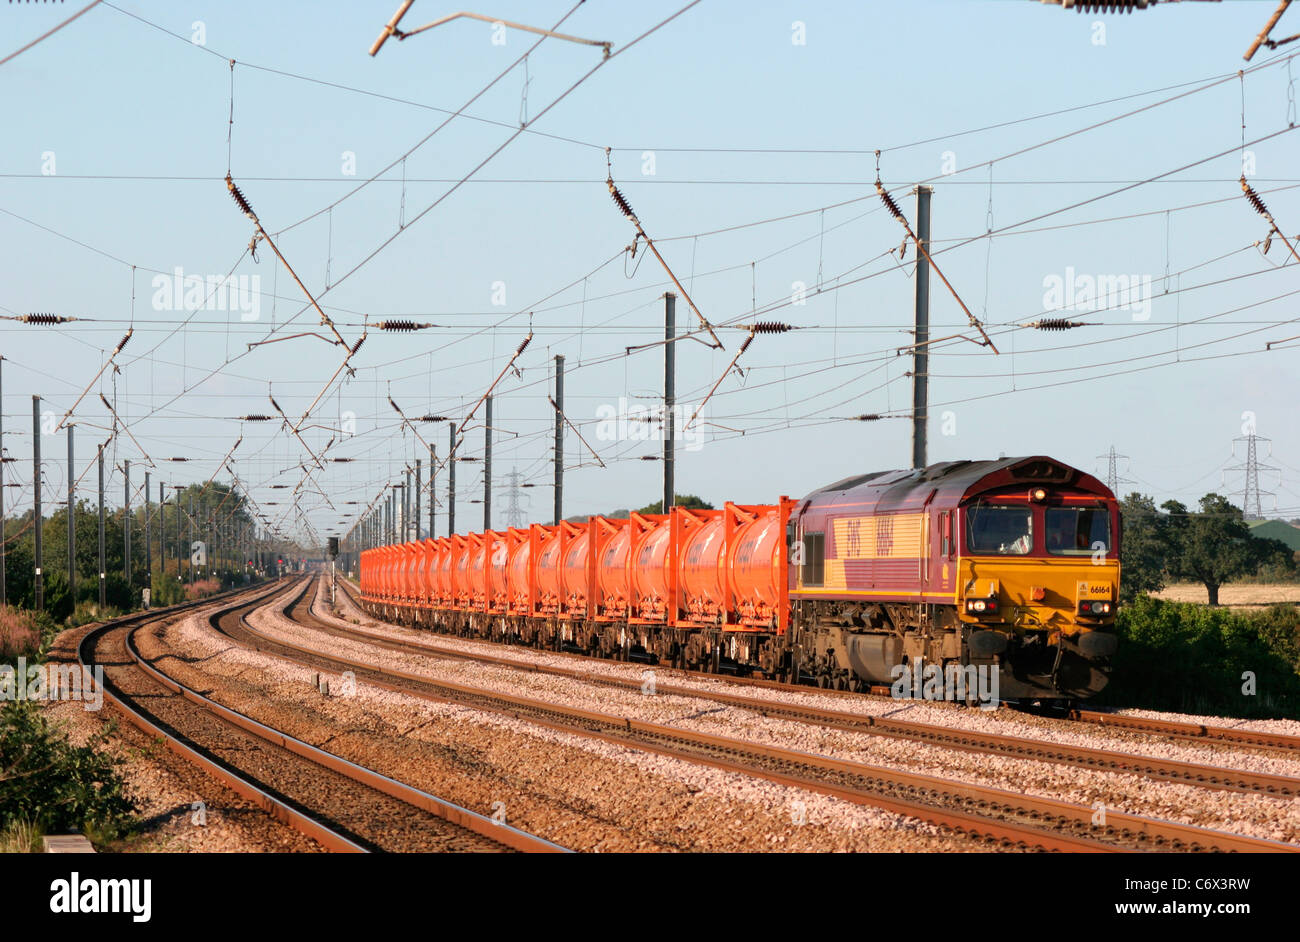 A class 66 diesel locomotive number 66164 working a train of containerised flyash near Sandy on the East Coast Mainline. - Stock Image